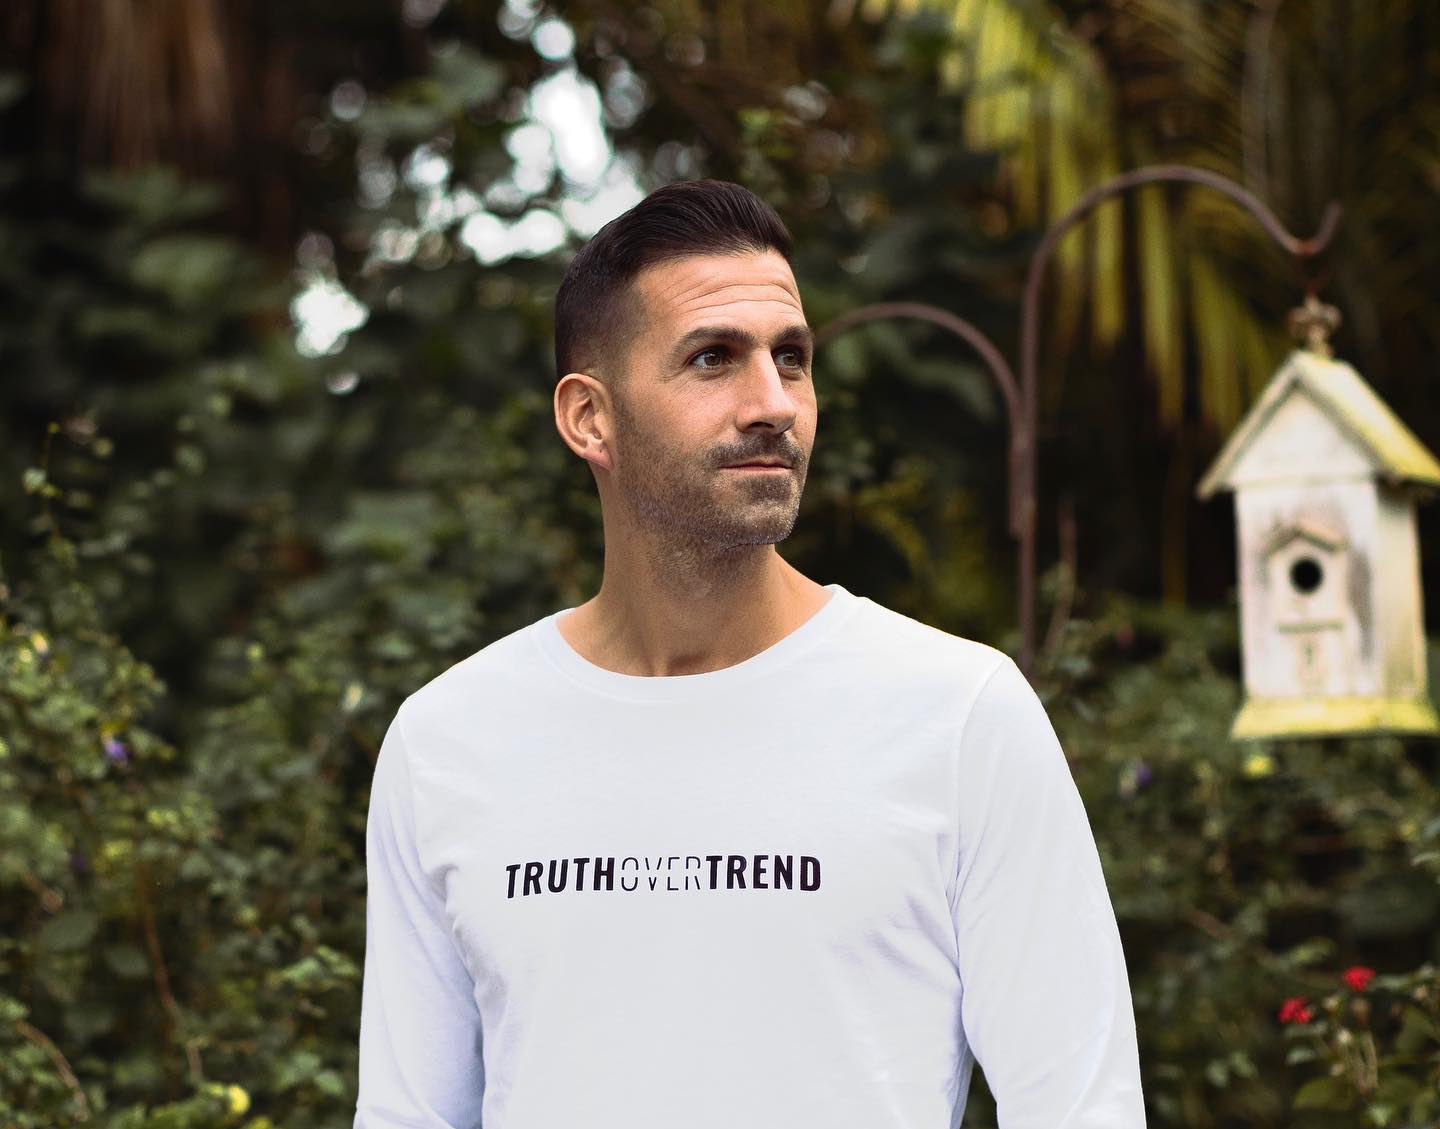 Matthew Maher wearing a truth over trend shirt